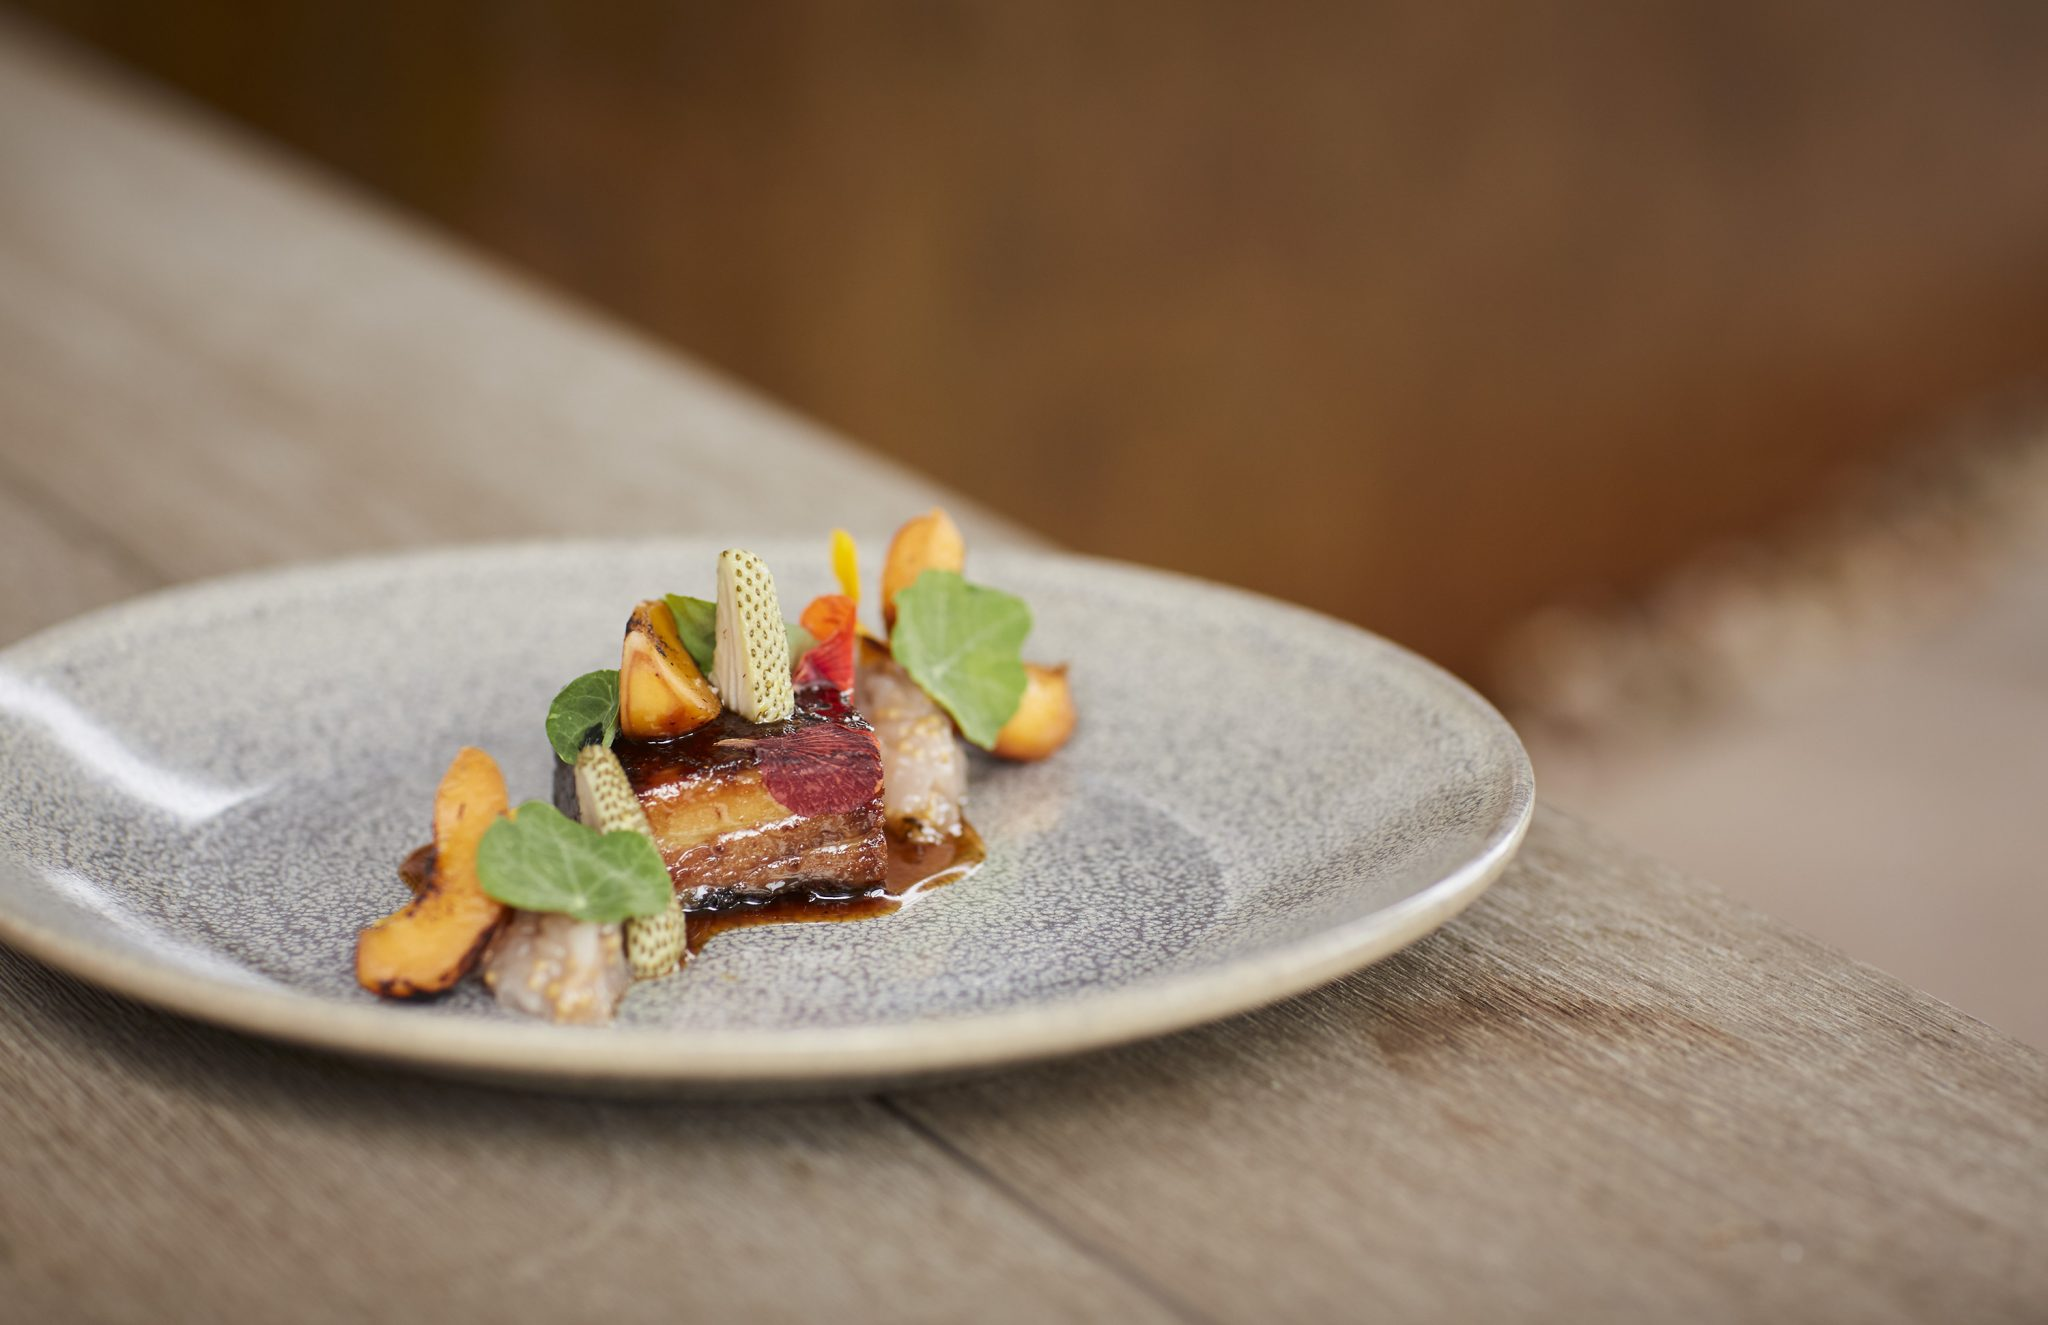 Braised Pork Belly with Roasted K&J Orchards Apricots, Pickled Green Strawberries and Nasturtium